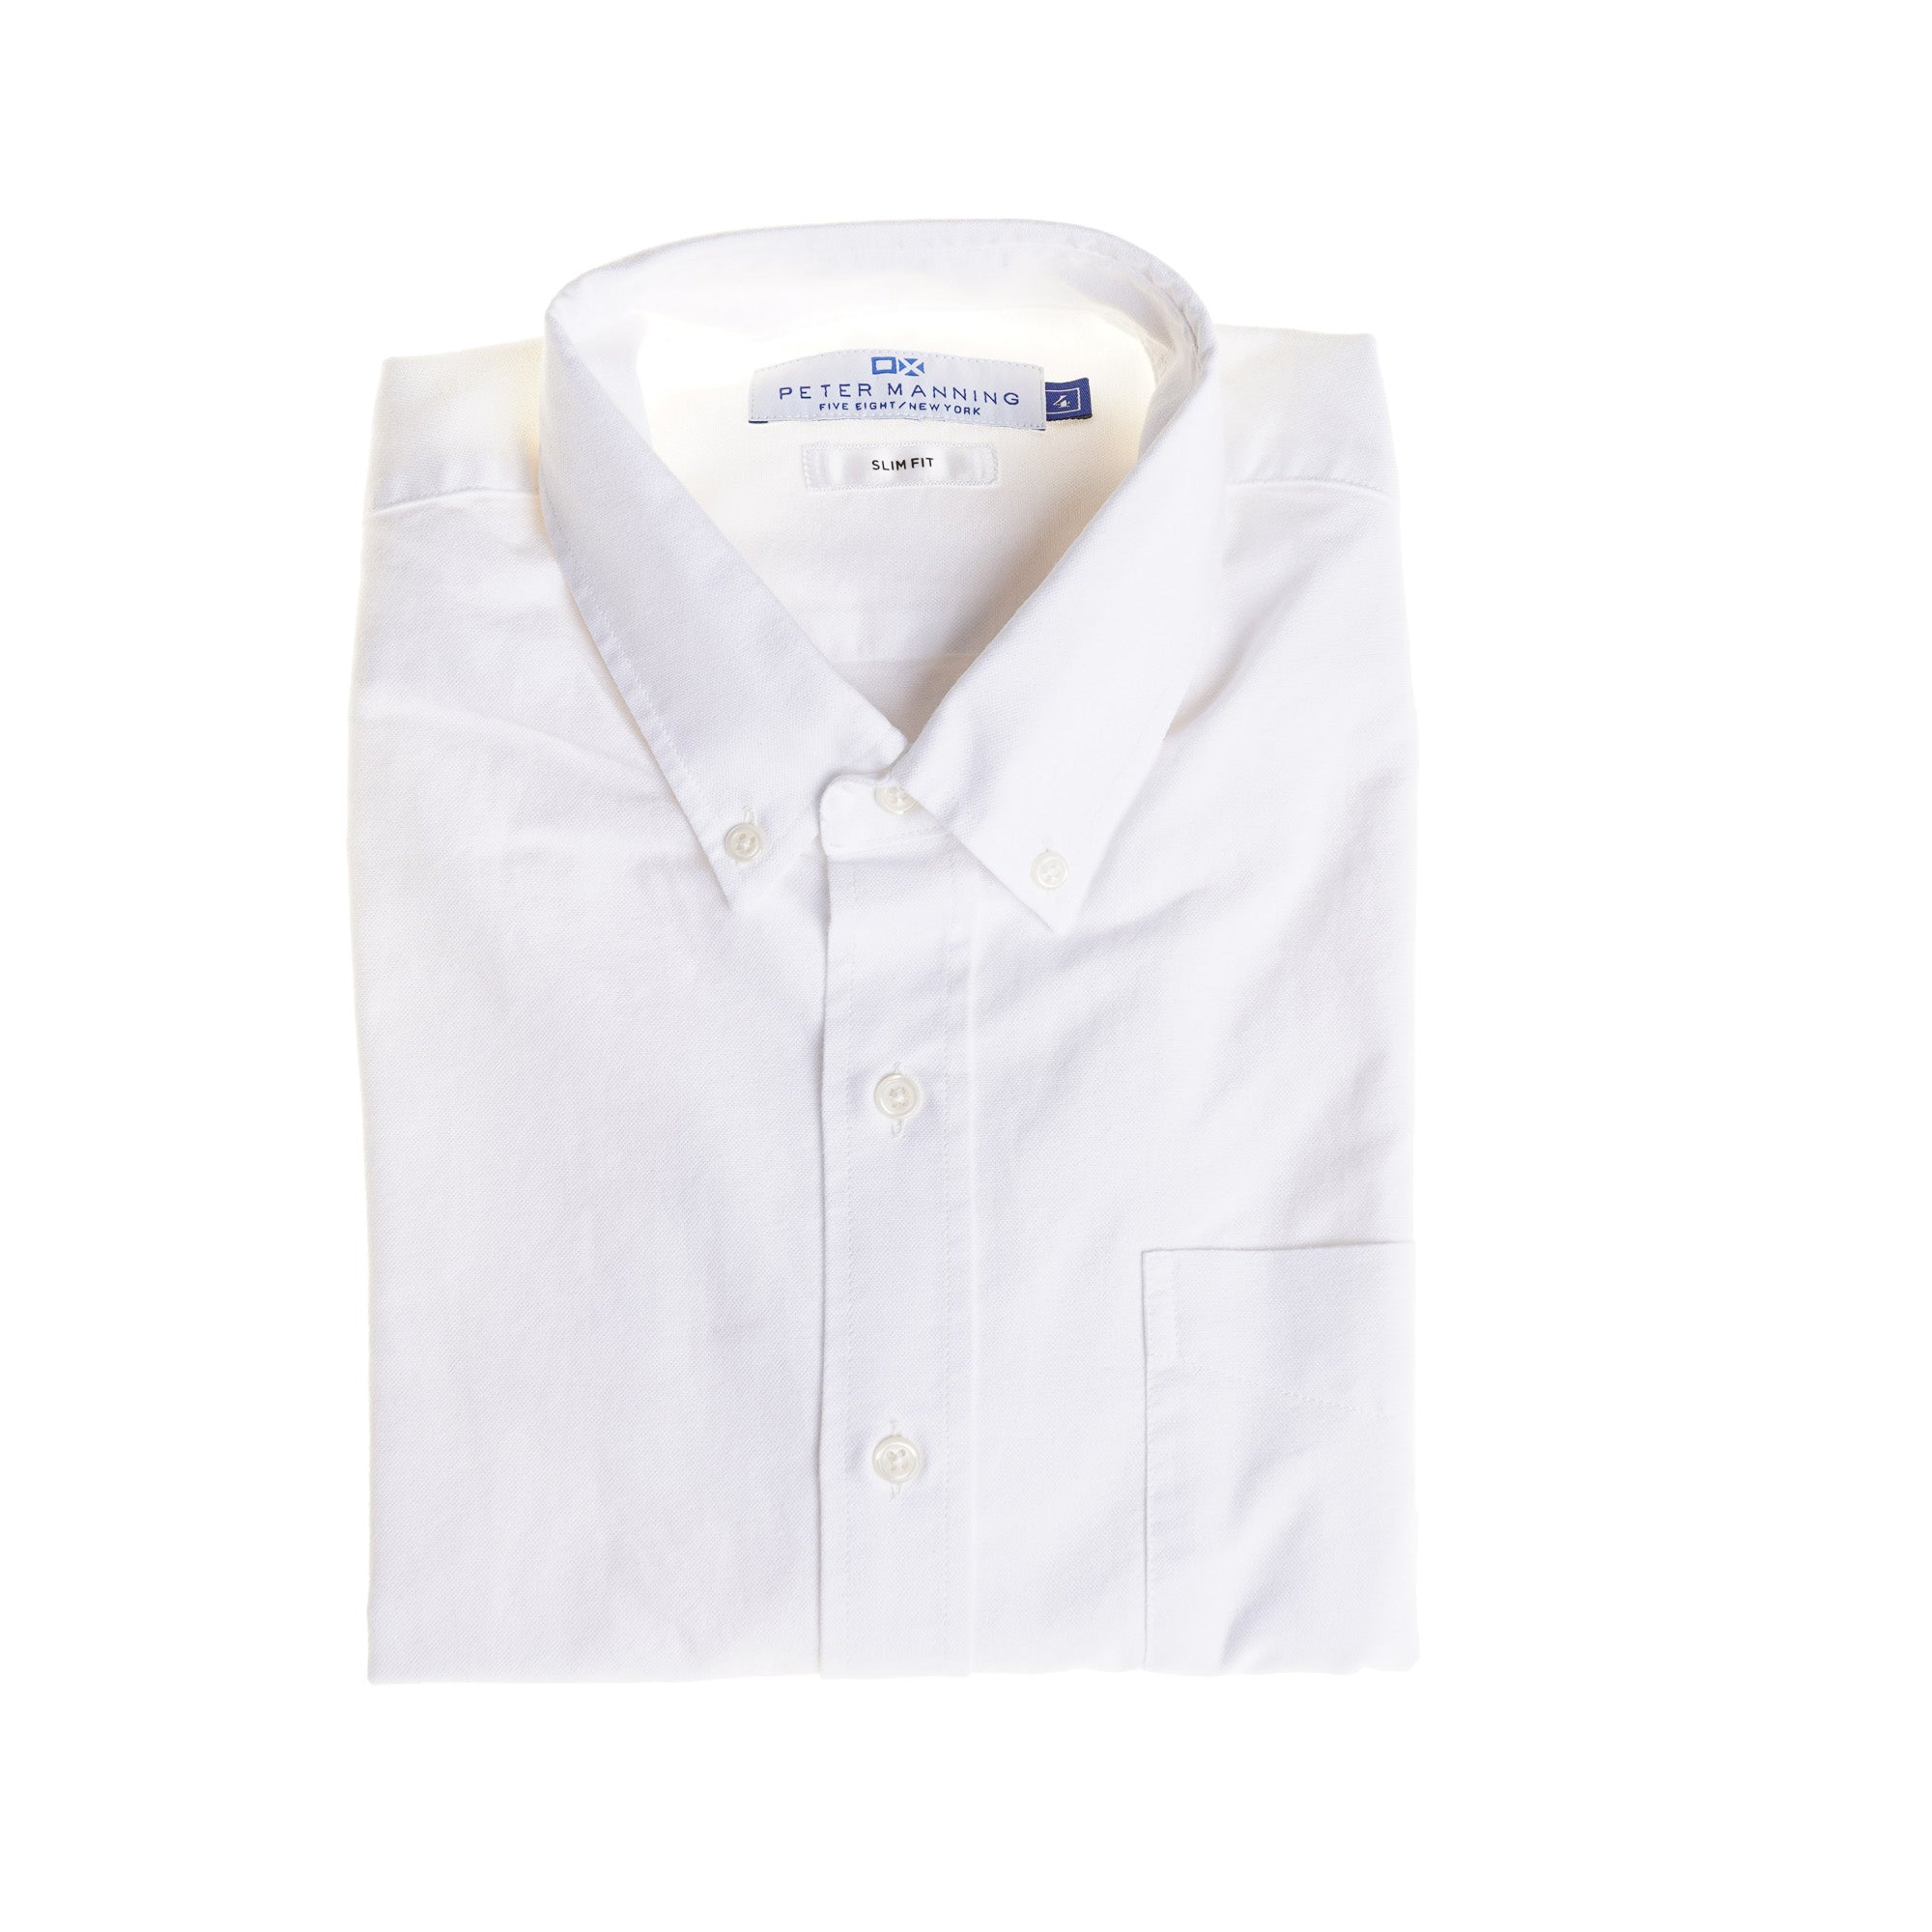 Weekend Oxford Slim Fit - White